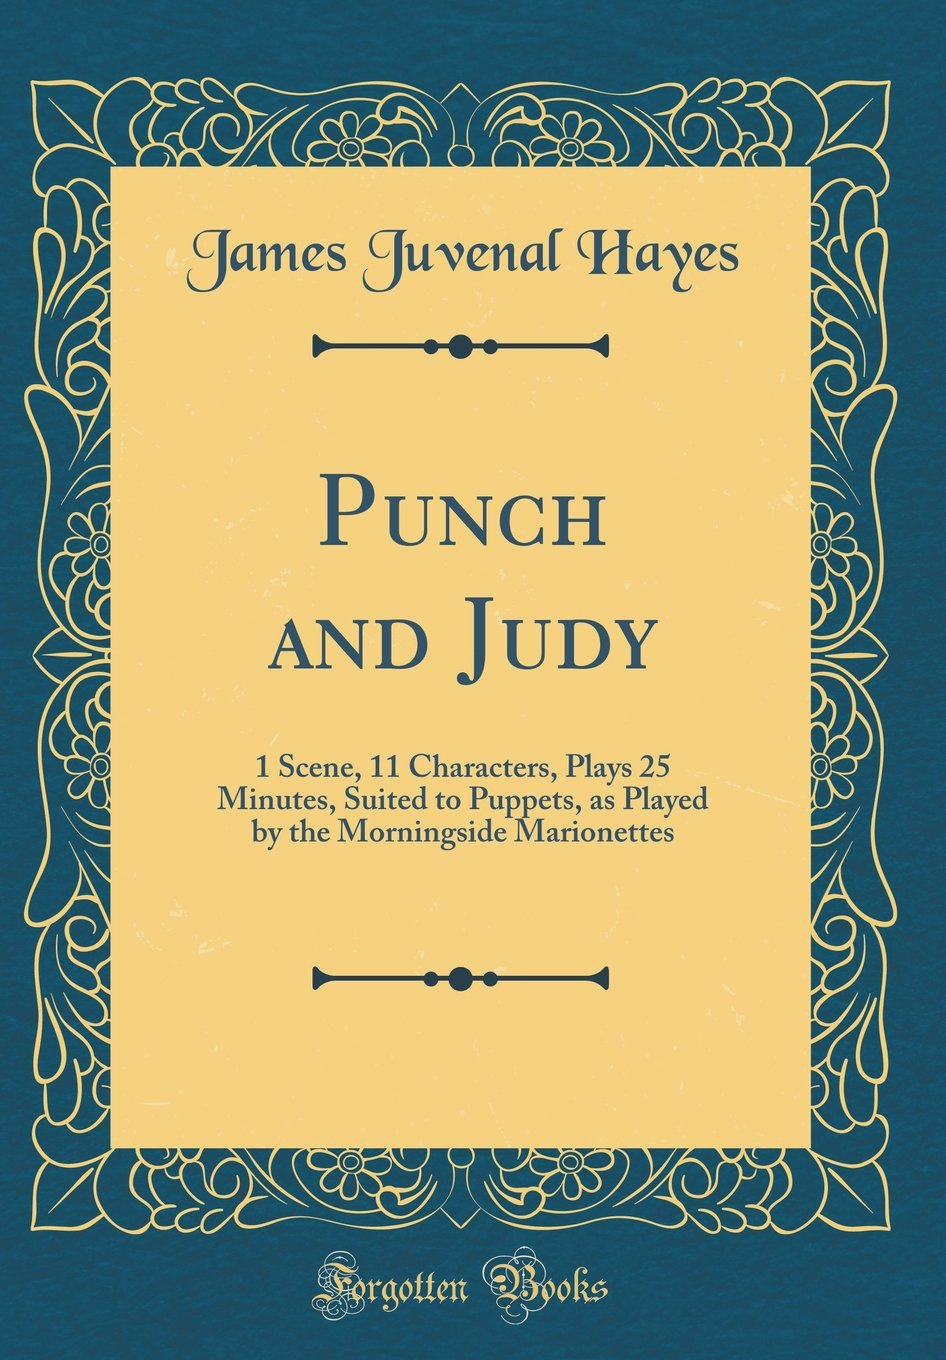 Punch and Judy: 1 Scene, 11 Characters, Plays 25 Minutes, Suited to Puppets, as Played by the Morningside Marionettes (Classic Reprint) Text fb2 book